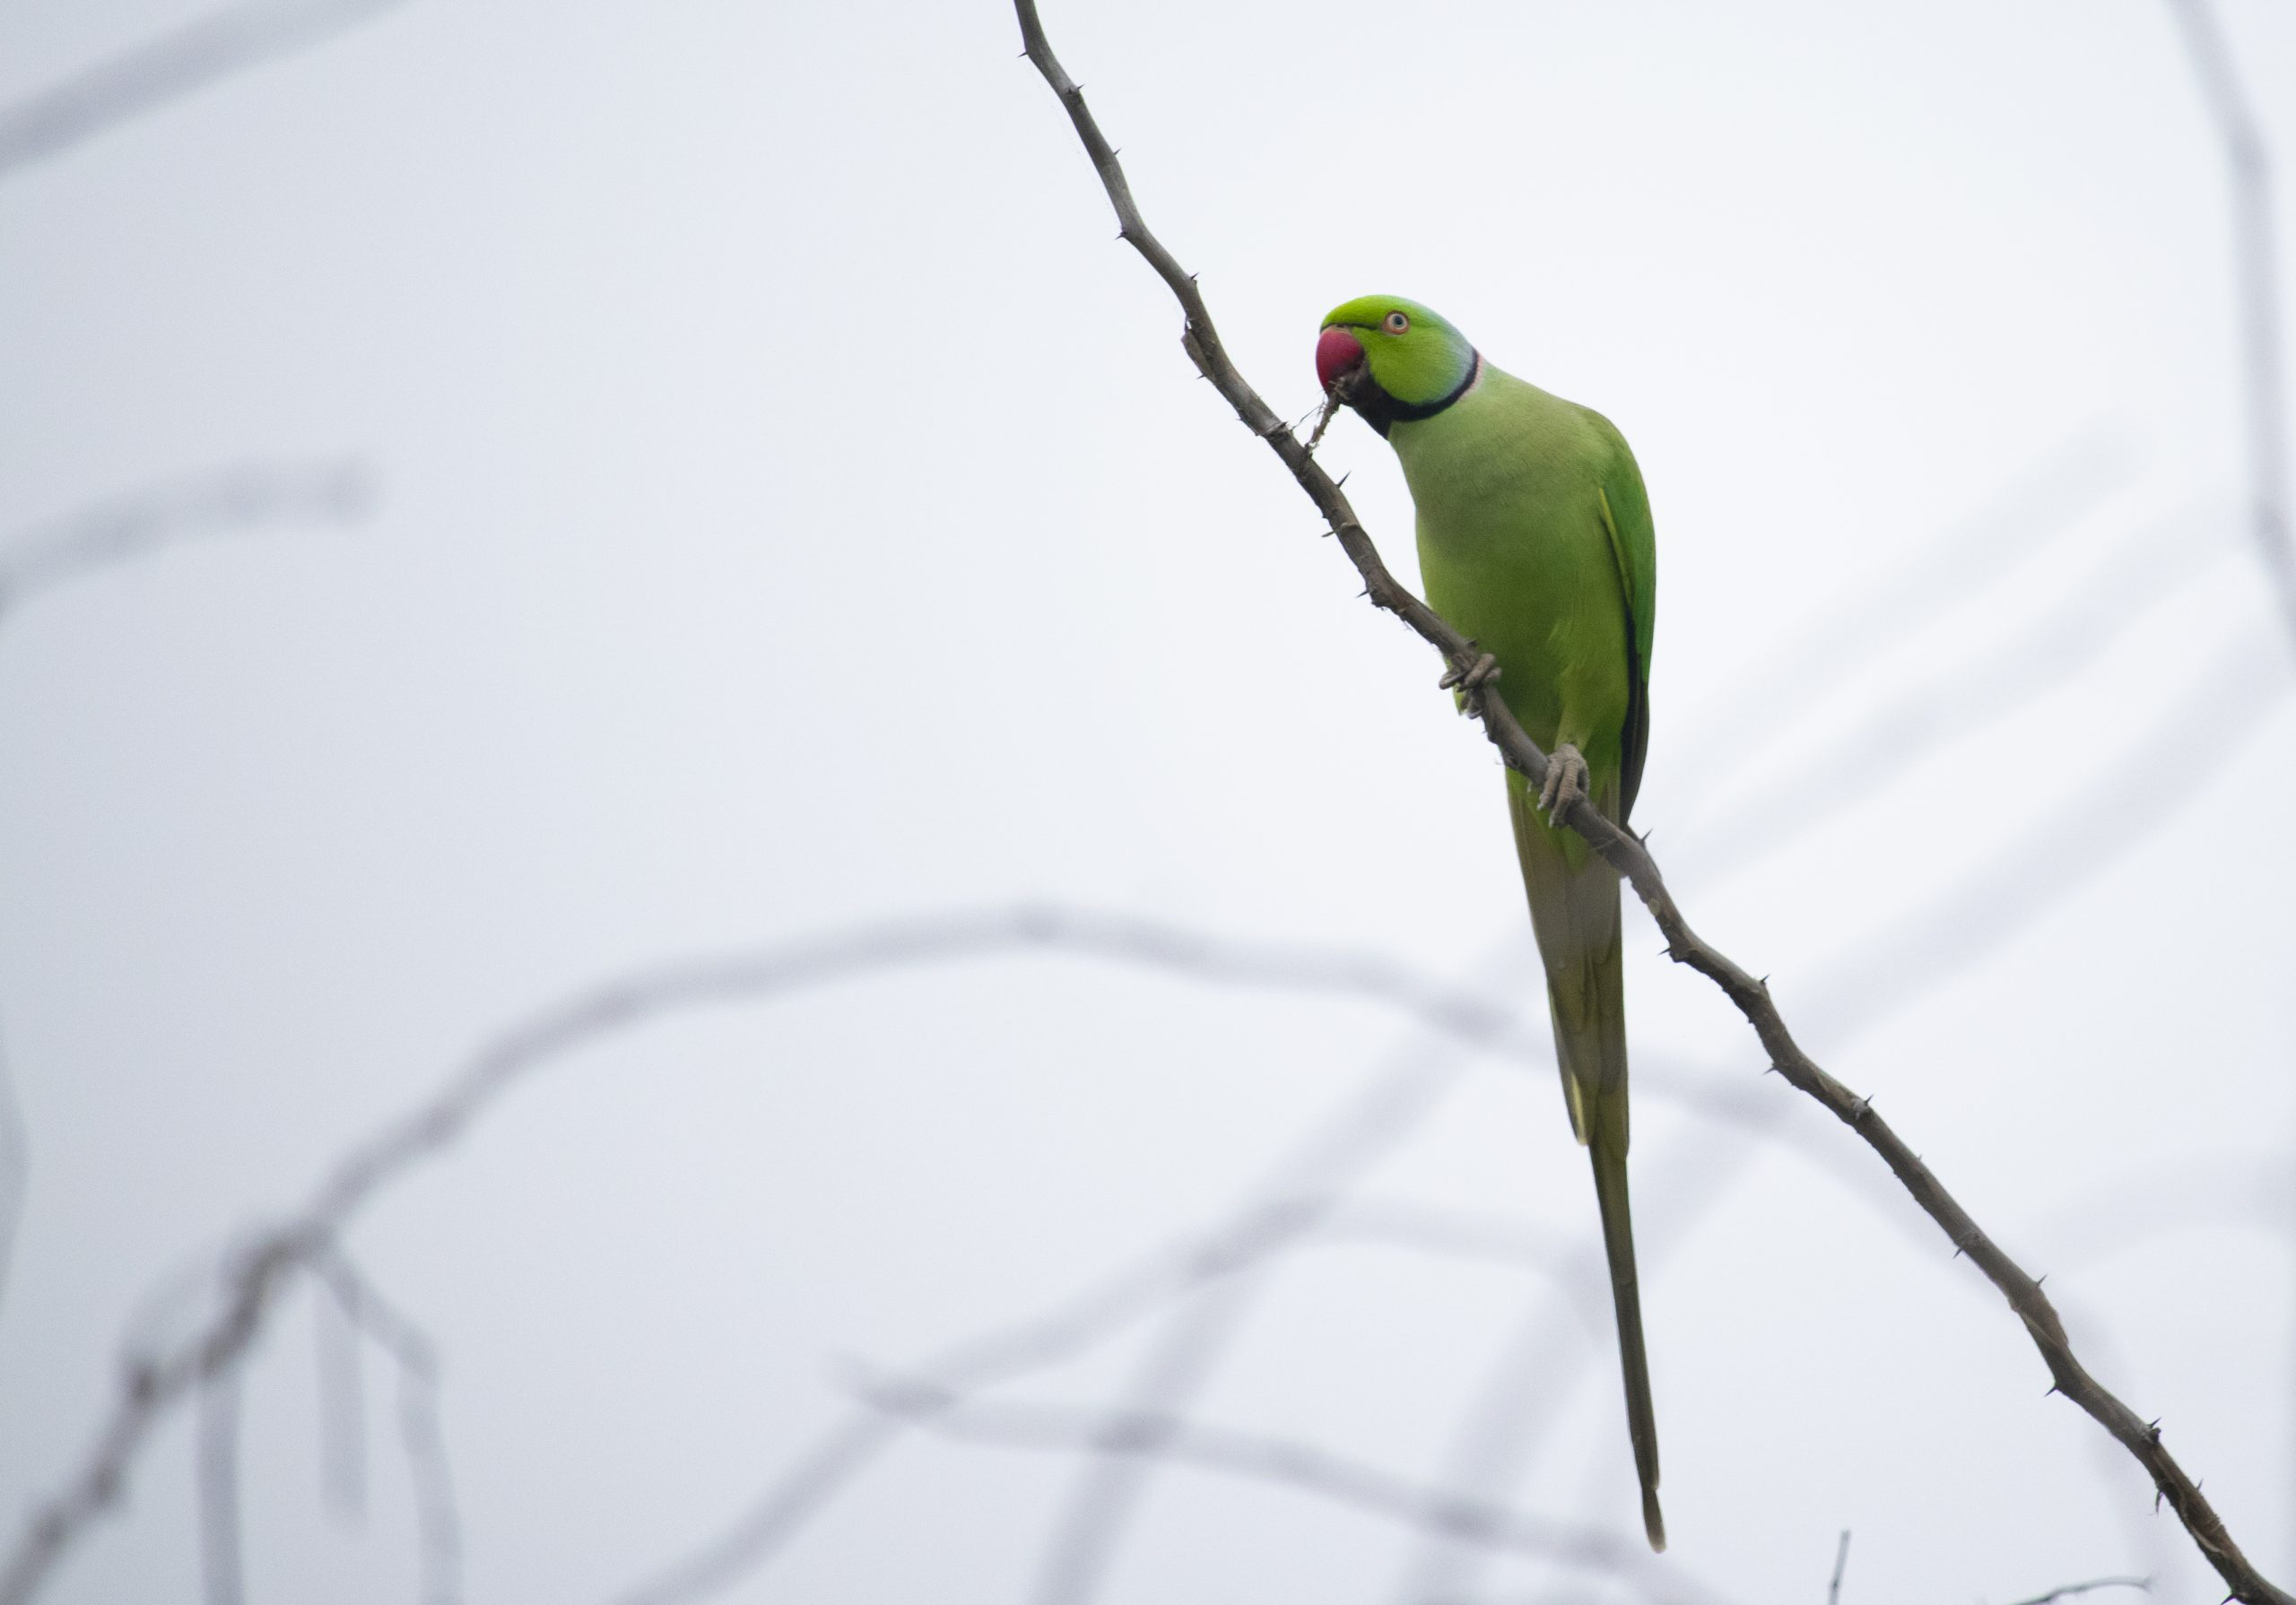 Parrot perched on a tree branch